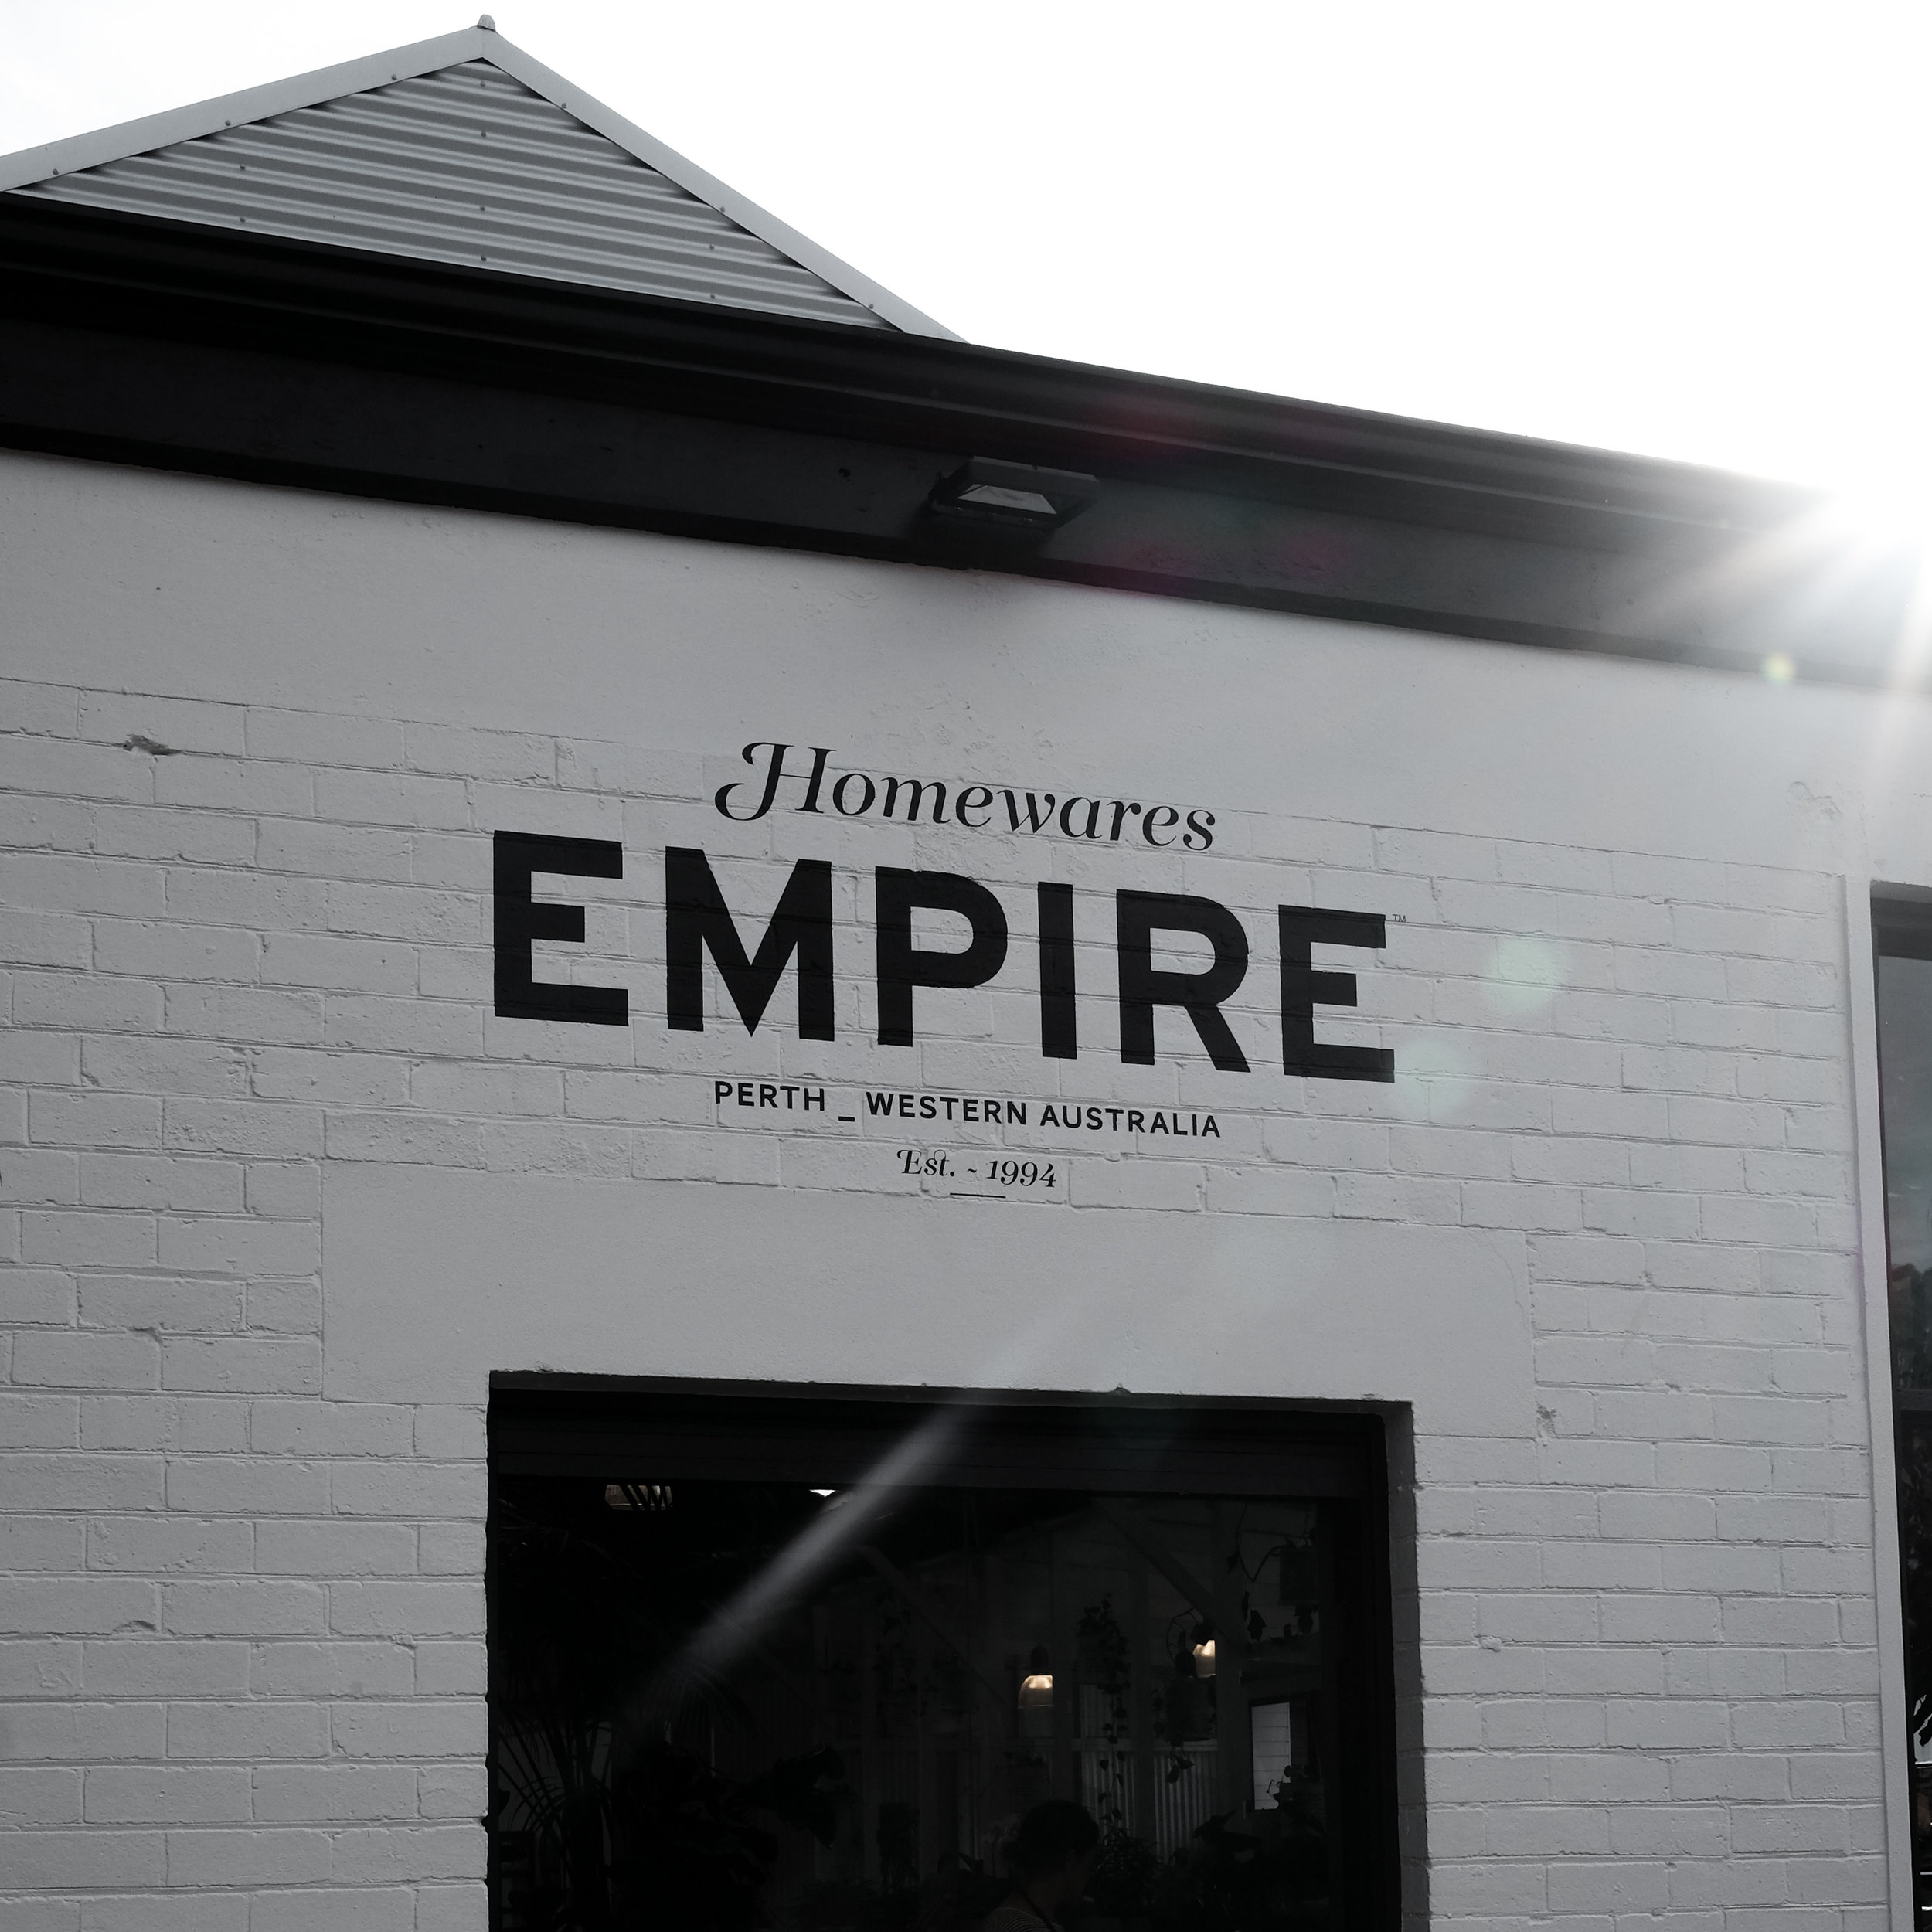 Empire Homewares